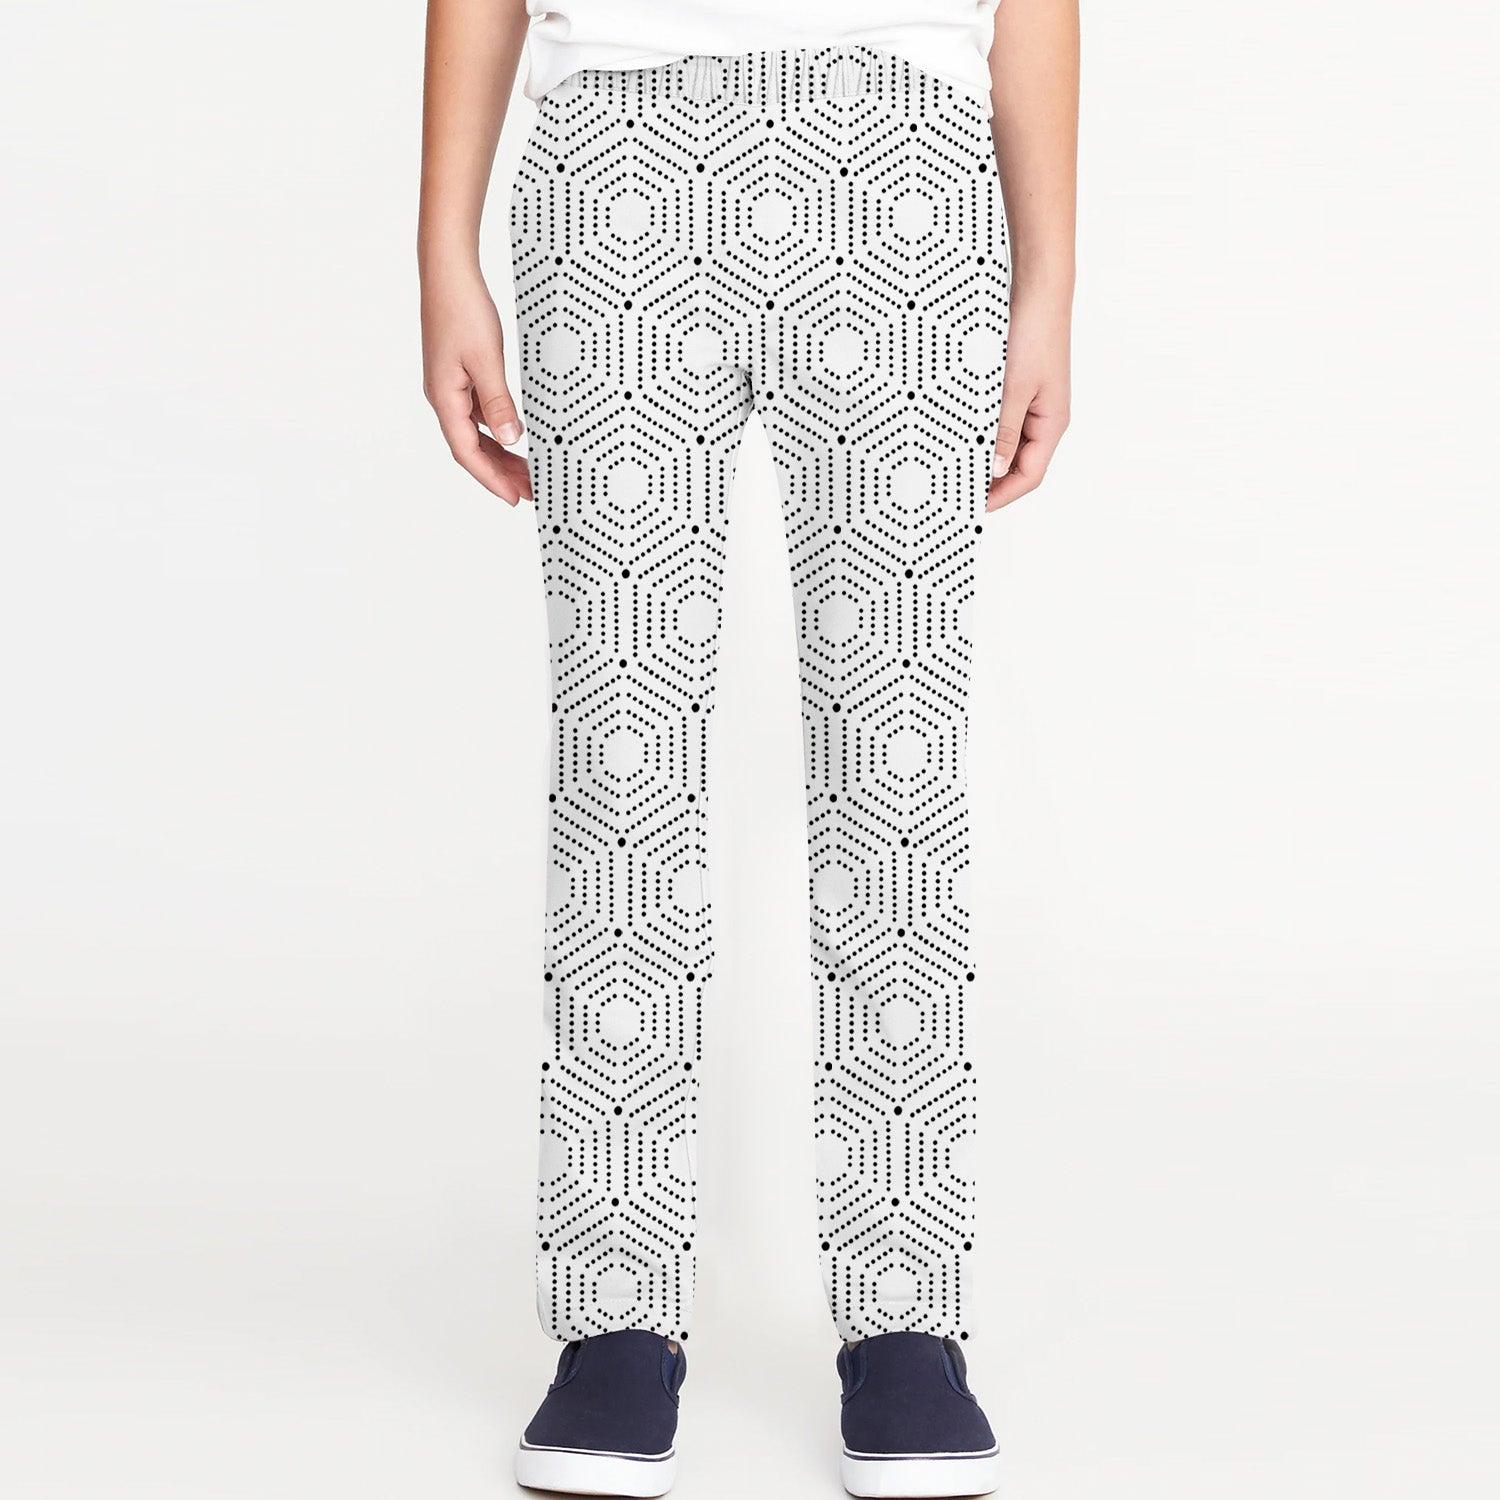 Zara Boy Slim Fit Flannel Trouser For Kids-White with Allover Print-BE9833